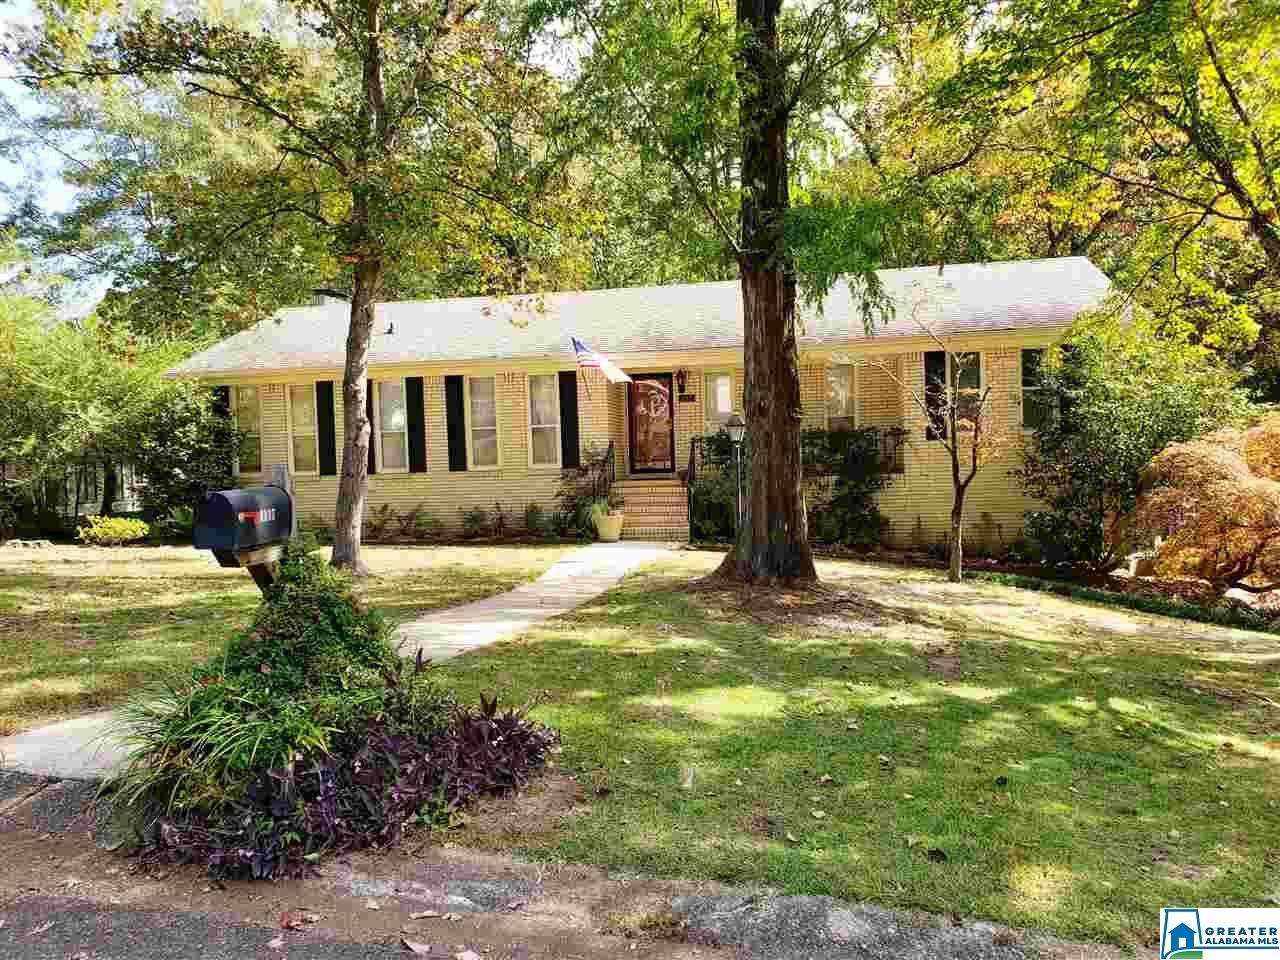 1117 MOUNTAIN OAKS DR, Hoover, AL 35226 - MLS#: 899483